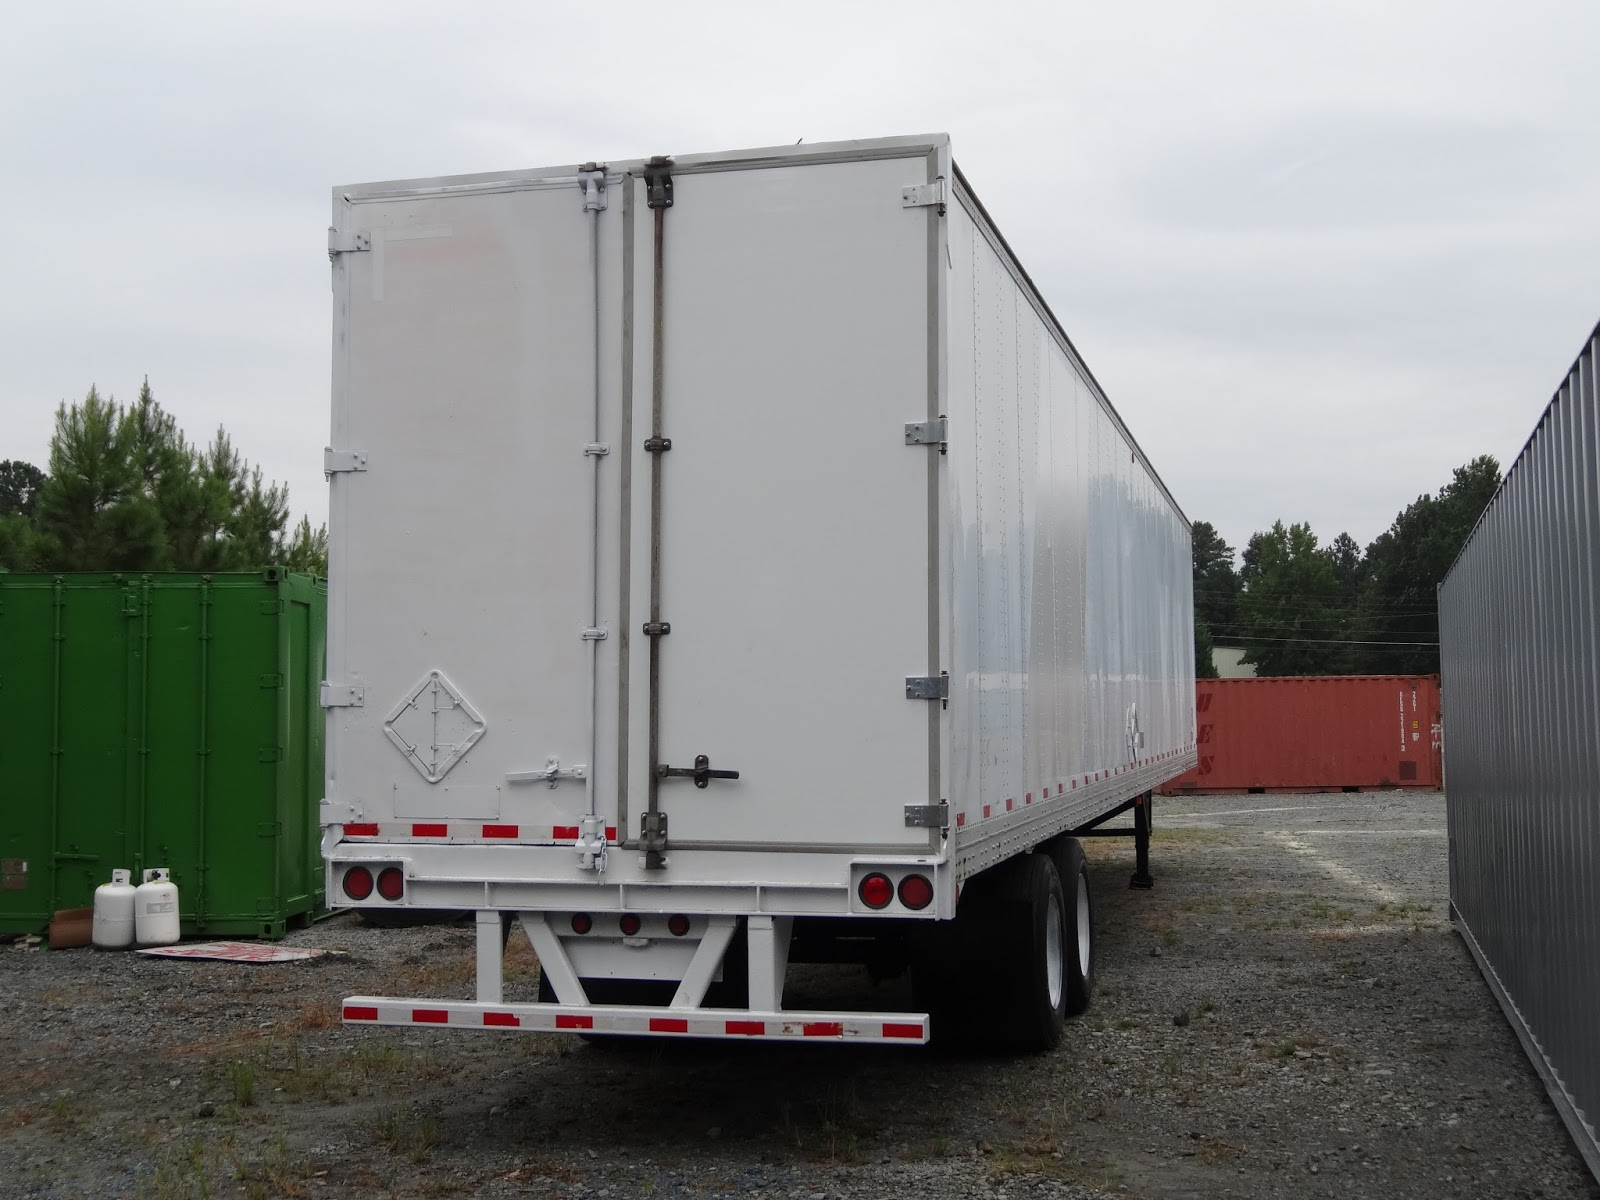 53 dry van & How to Buy Used Semi Trailers for Road Use in a Tight 2016 Market ... pezcame.com